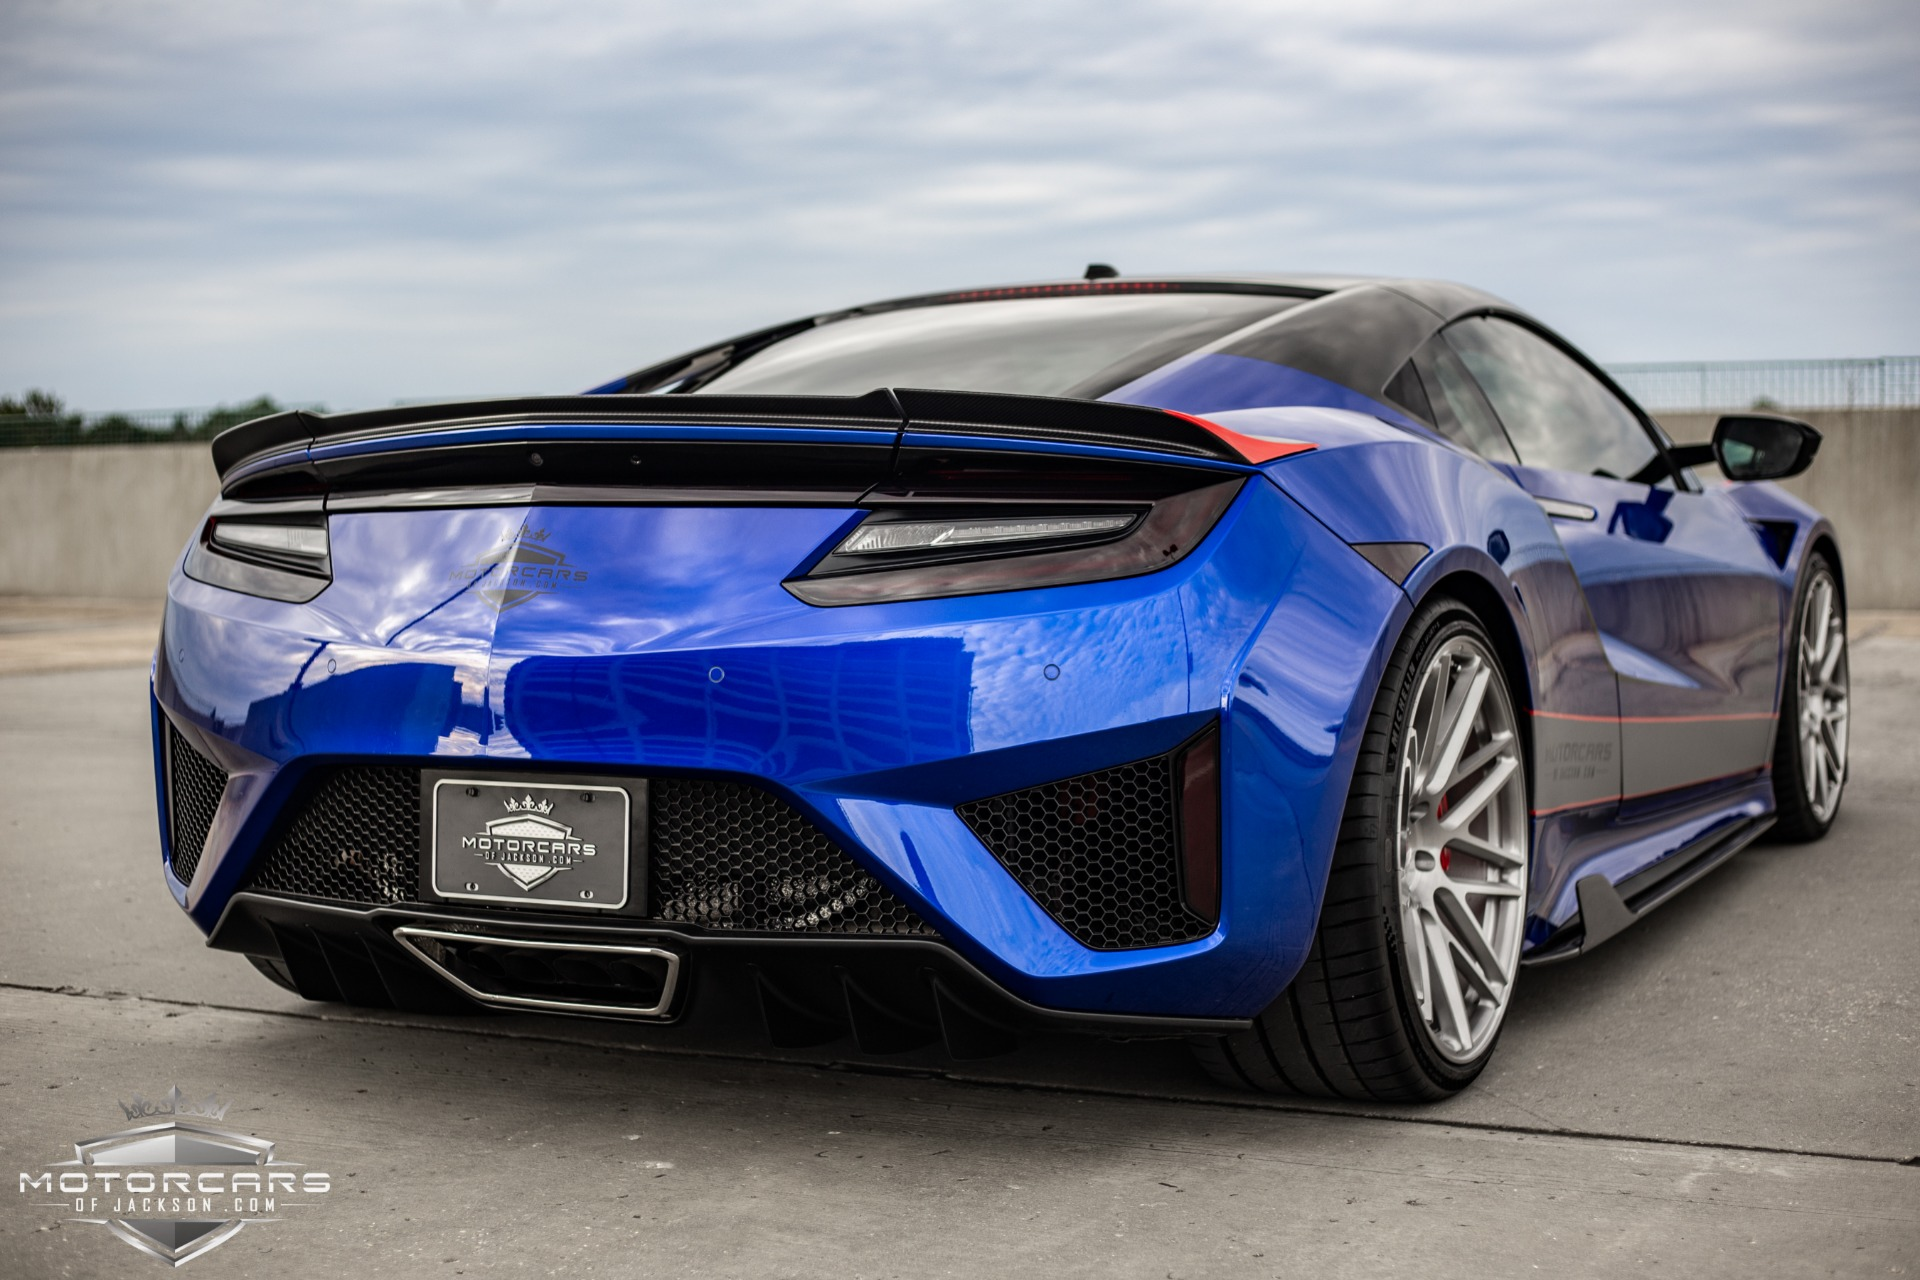 2017 acura nsx full custom show car stock hy000065 for sale near jackson ms ms acura dealer. Black Bedroom Furniture Sets. Home Design Ideas